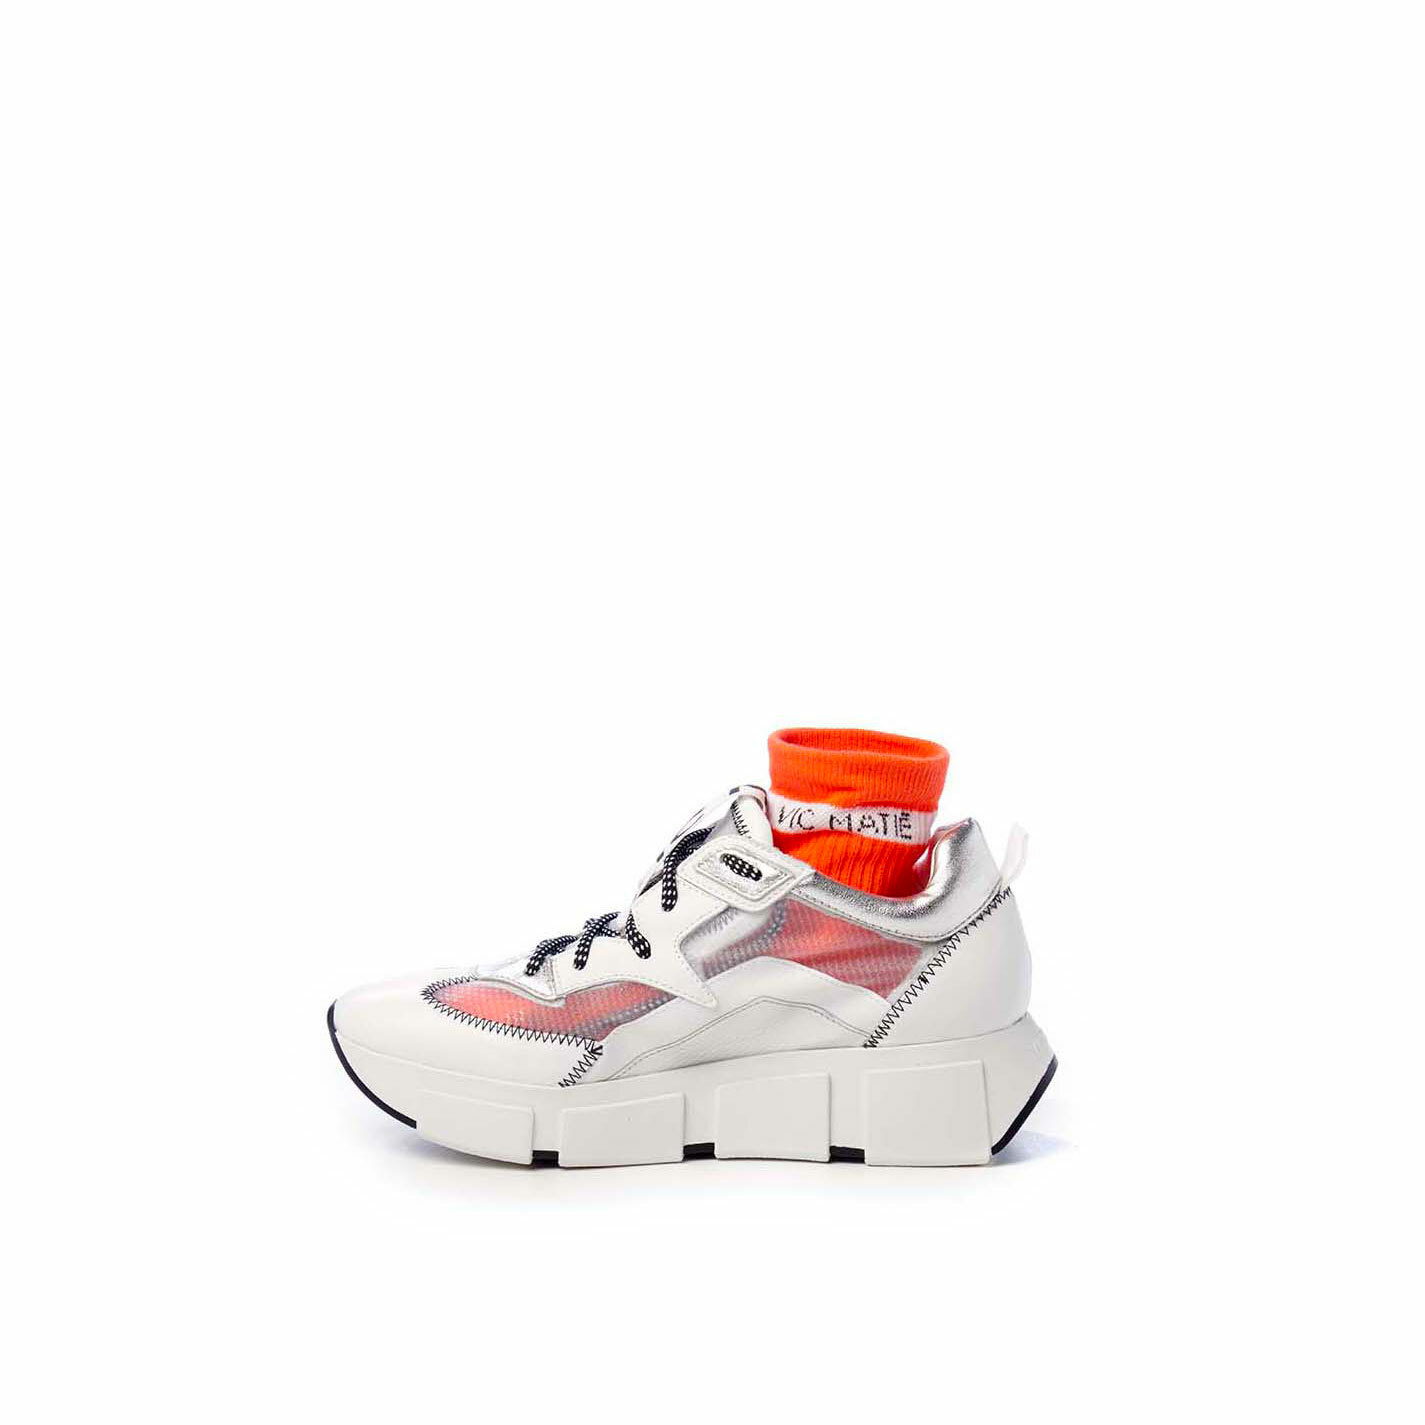 Silver/white running shoes in calfskin and see-through ripstop